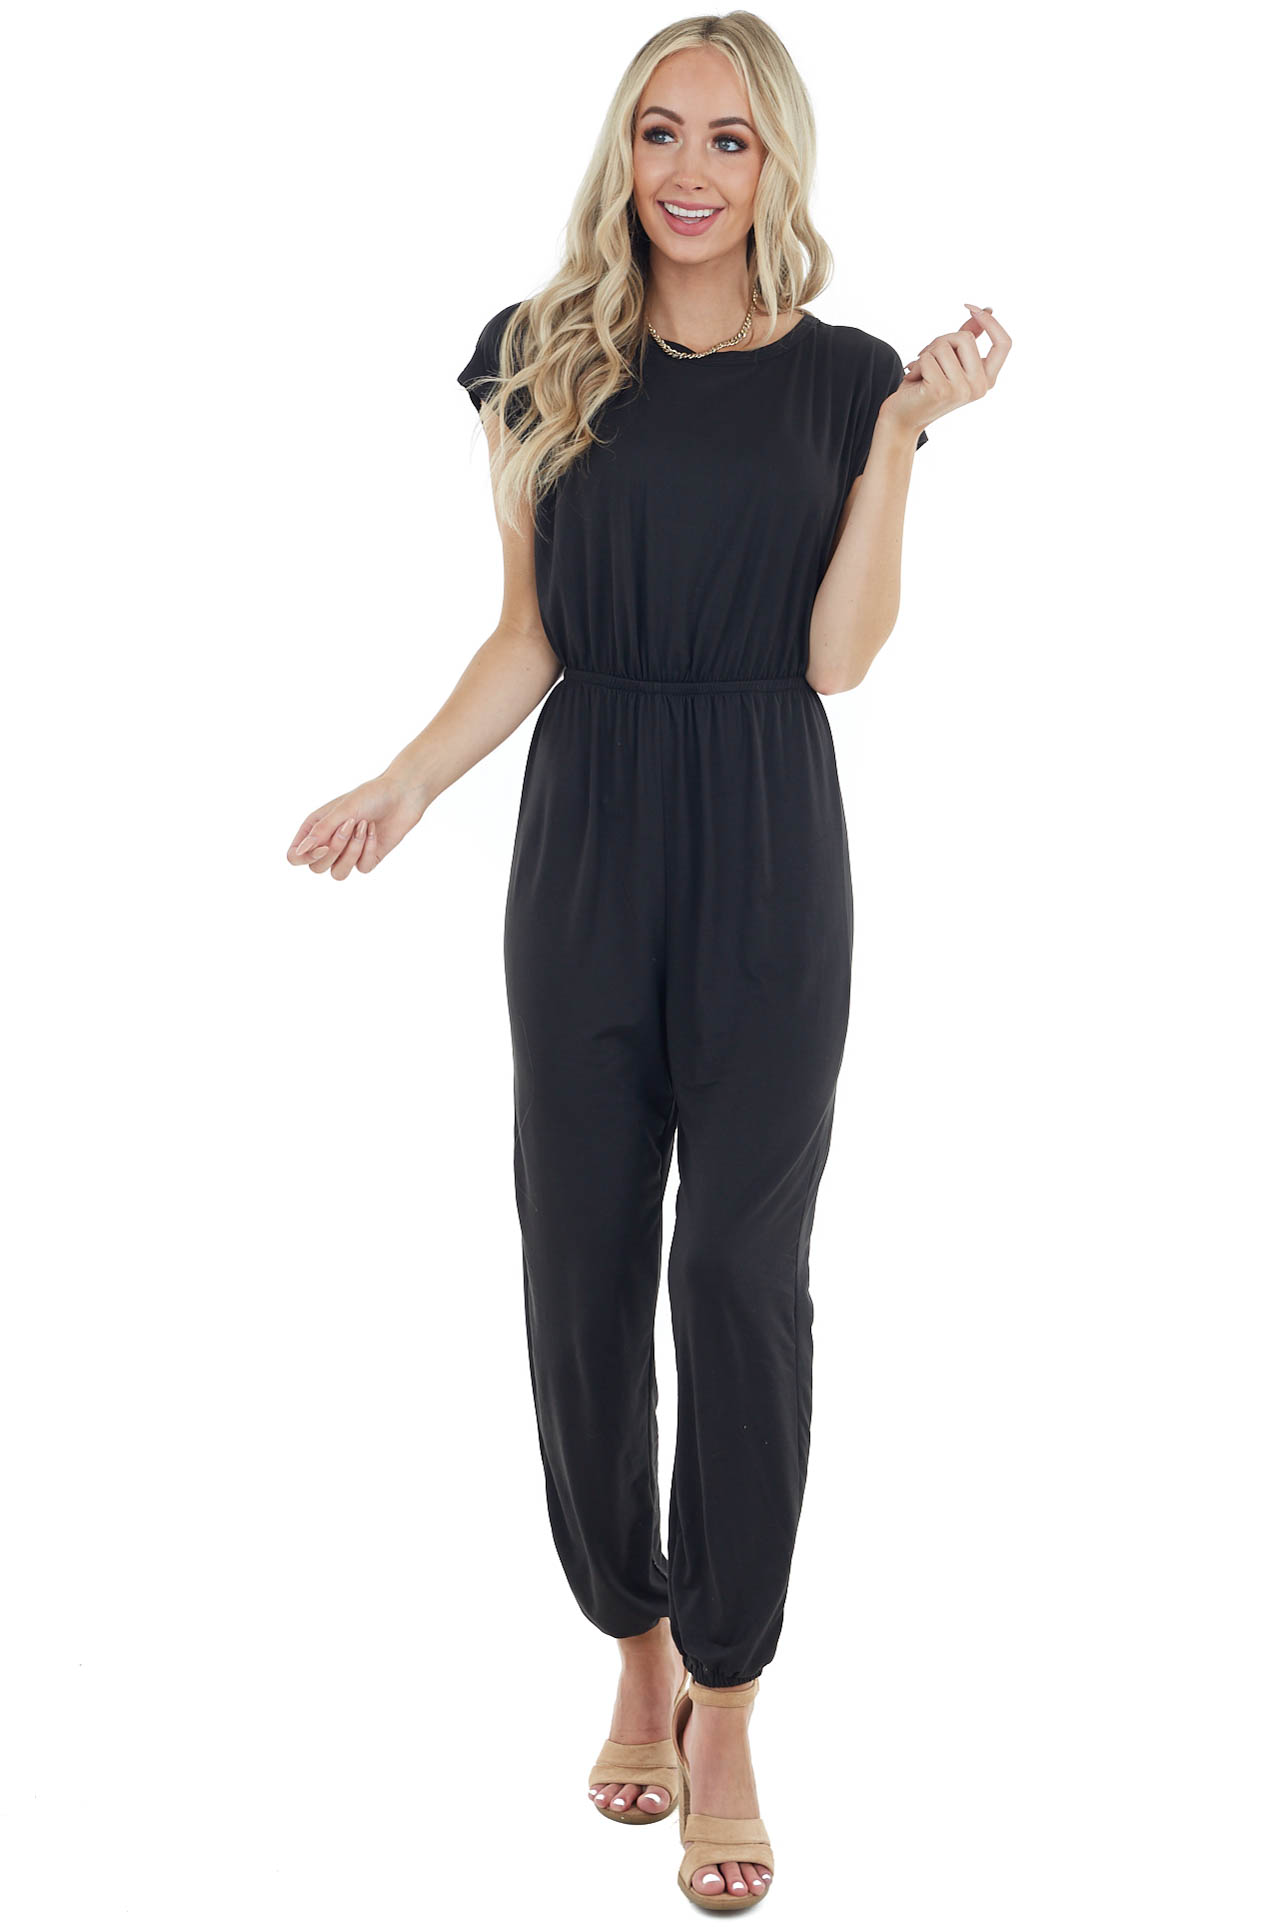 Black Knit Jumpsuit with Open Back and Tie Detail